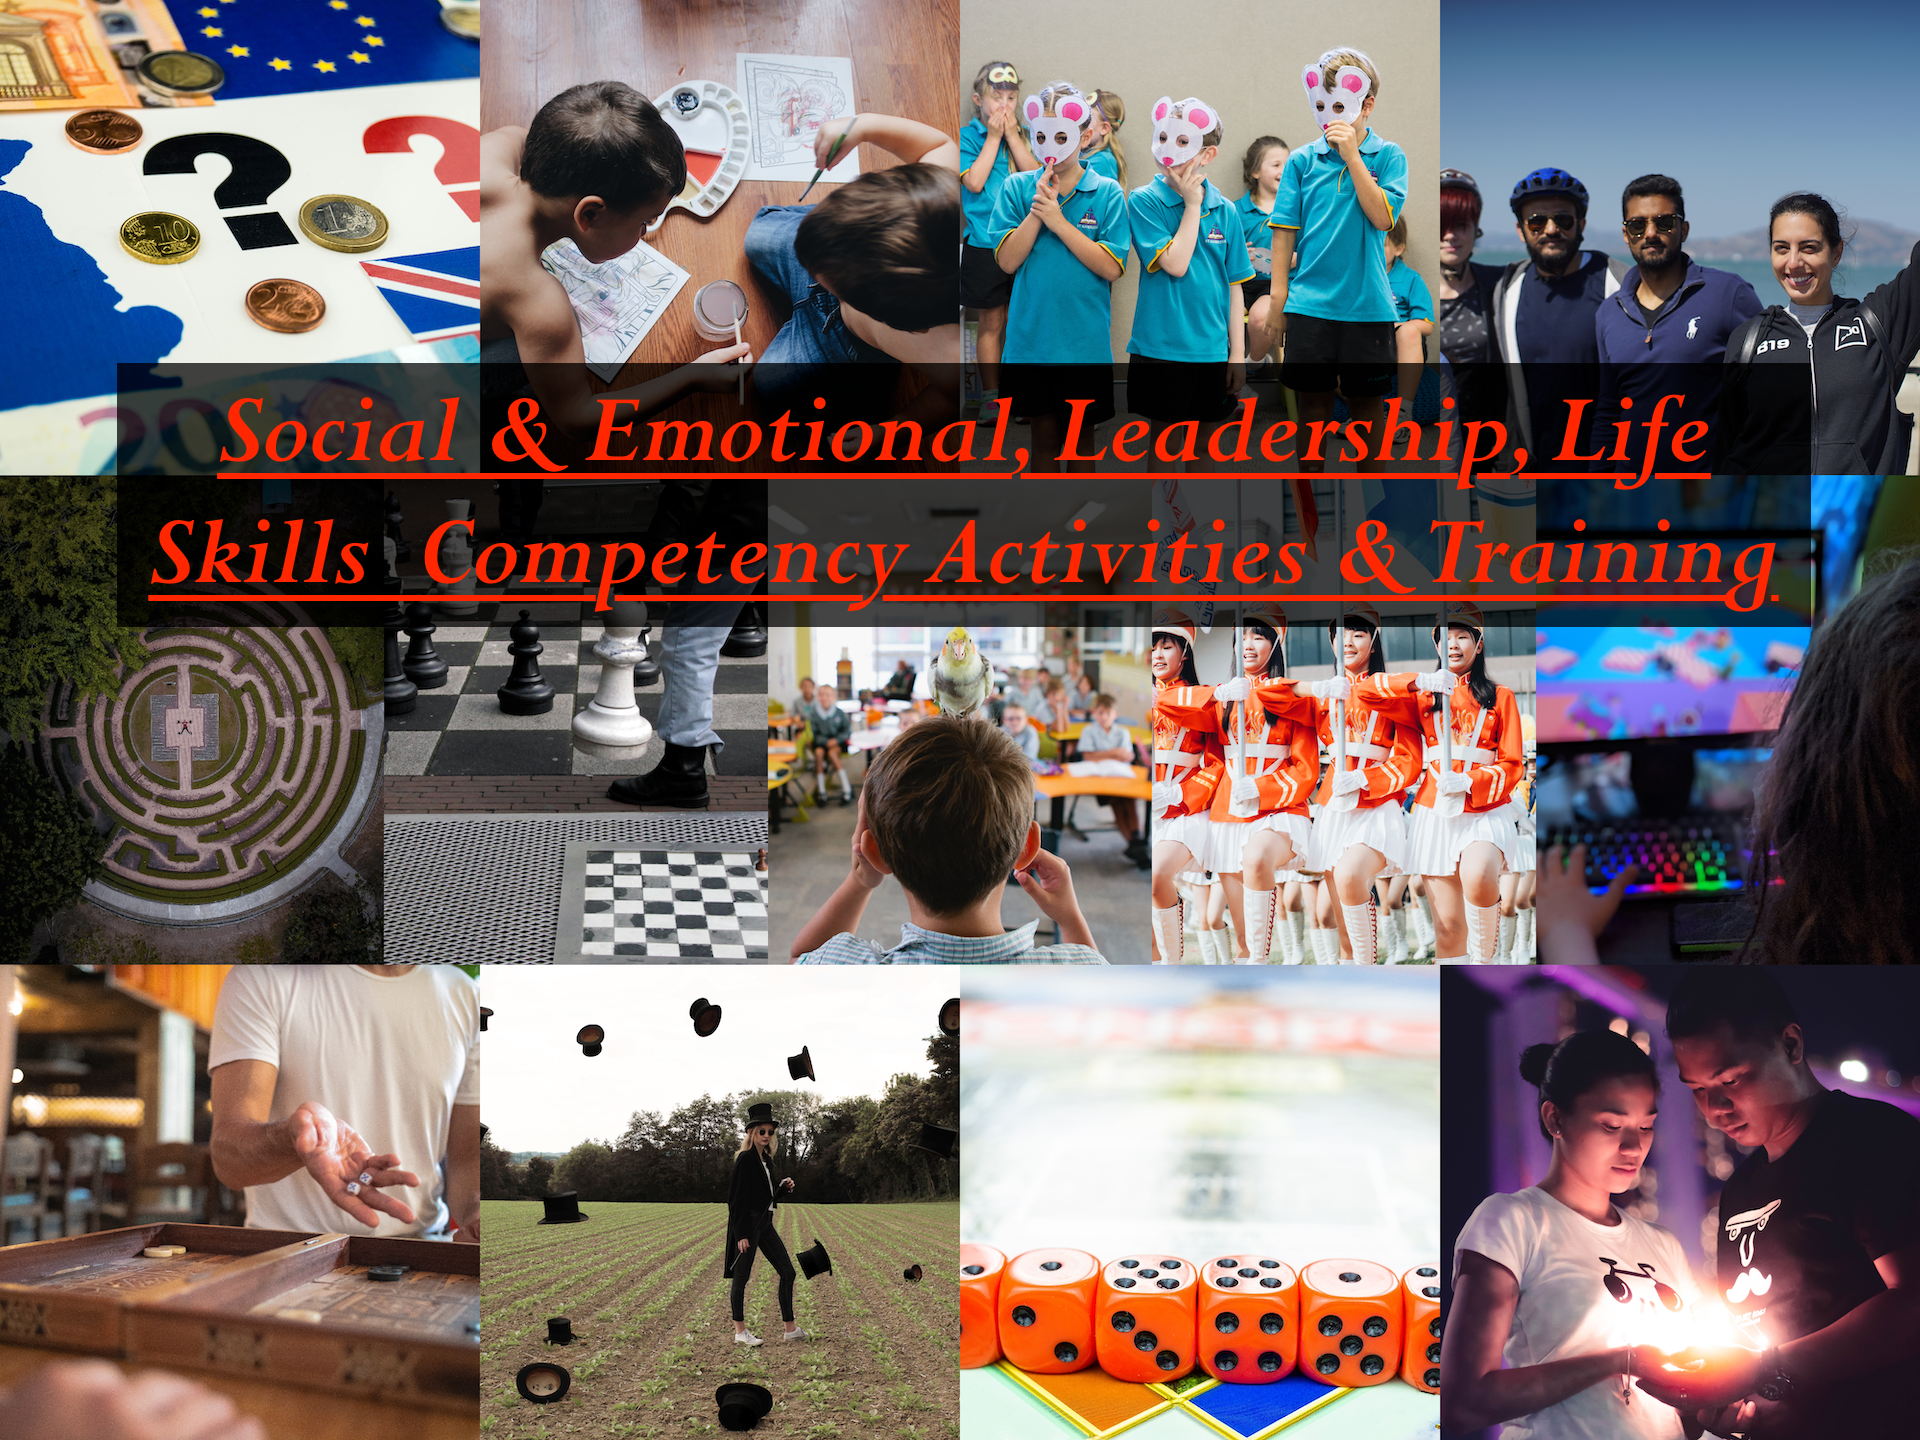 Social & Emotional Learning Competencies Feb21 label